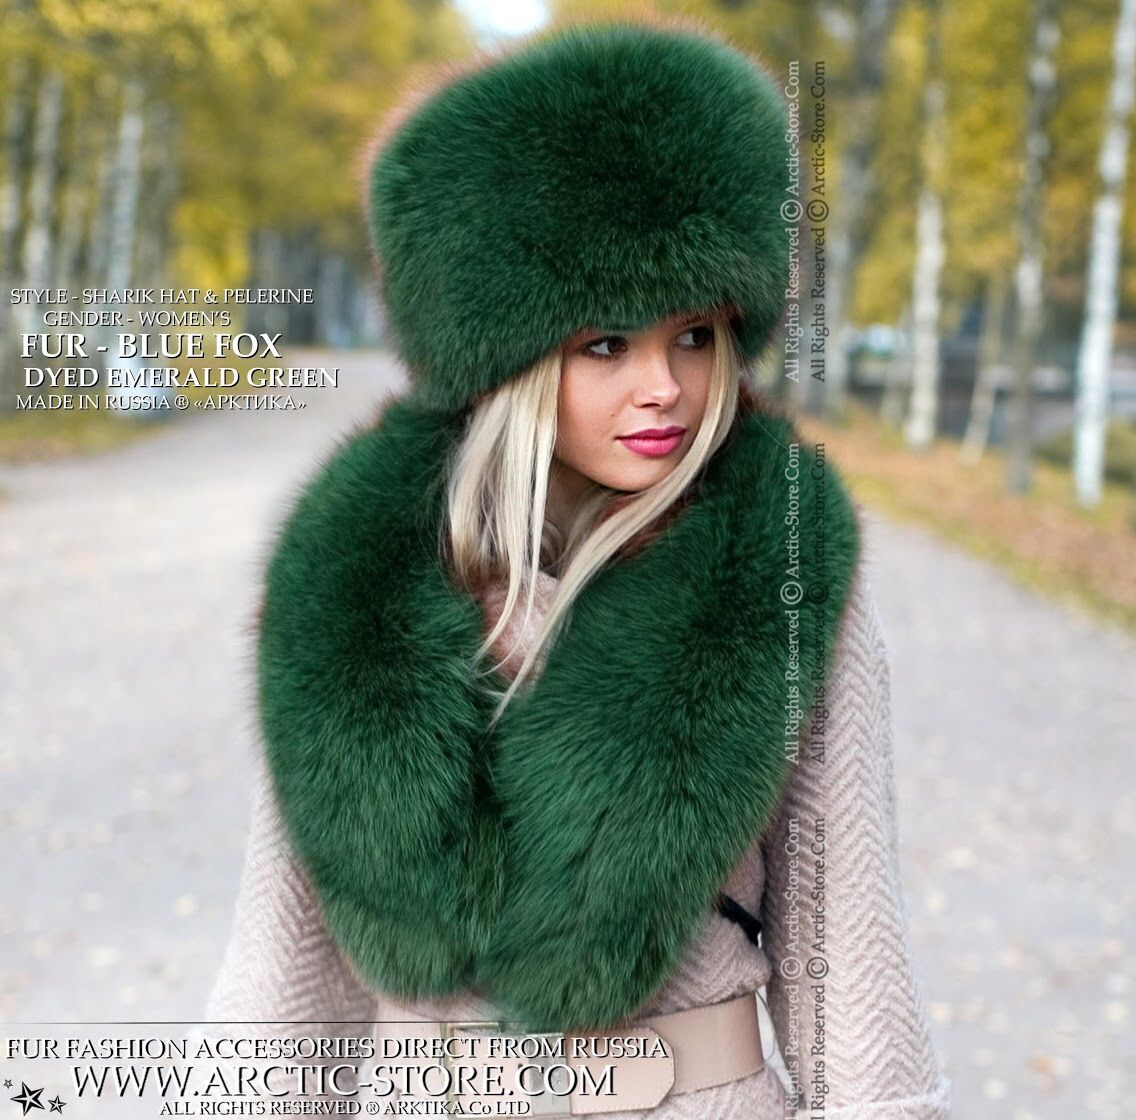 5aab25a9253 Russian fur hat and matching round pelerine in Saga quality Blue fox dyed  Emerald green color. Warm and stylish fox set for bitten frosts and fashion  ...